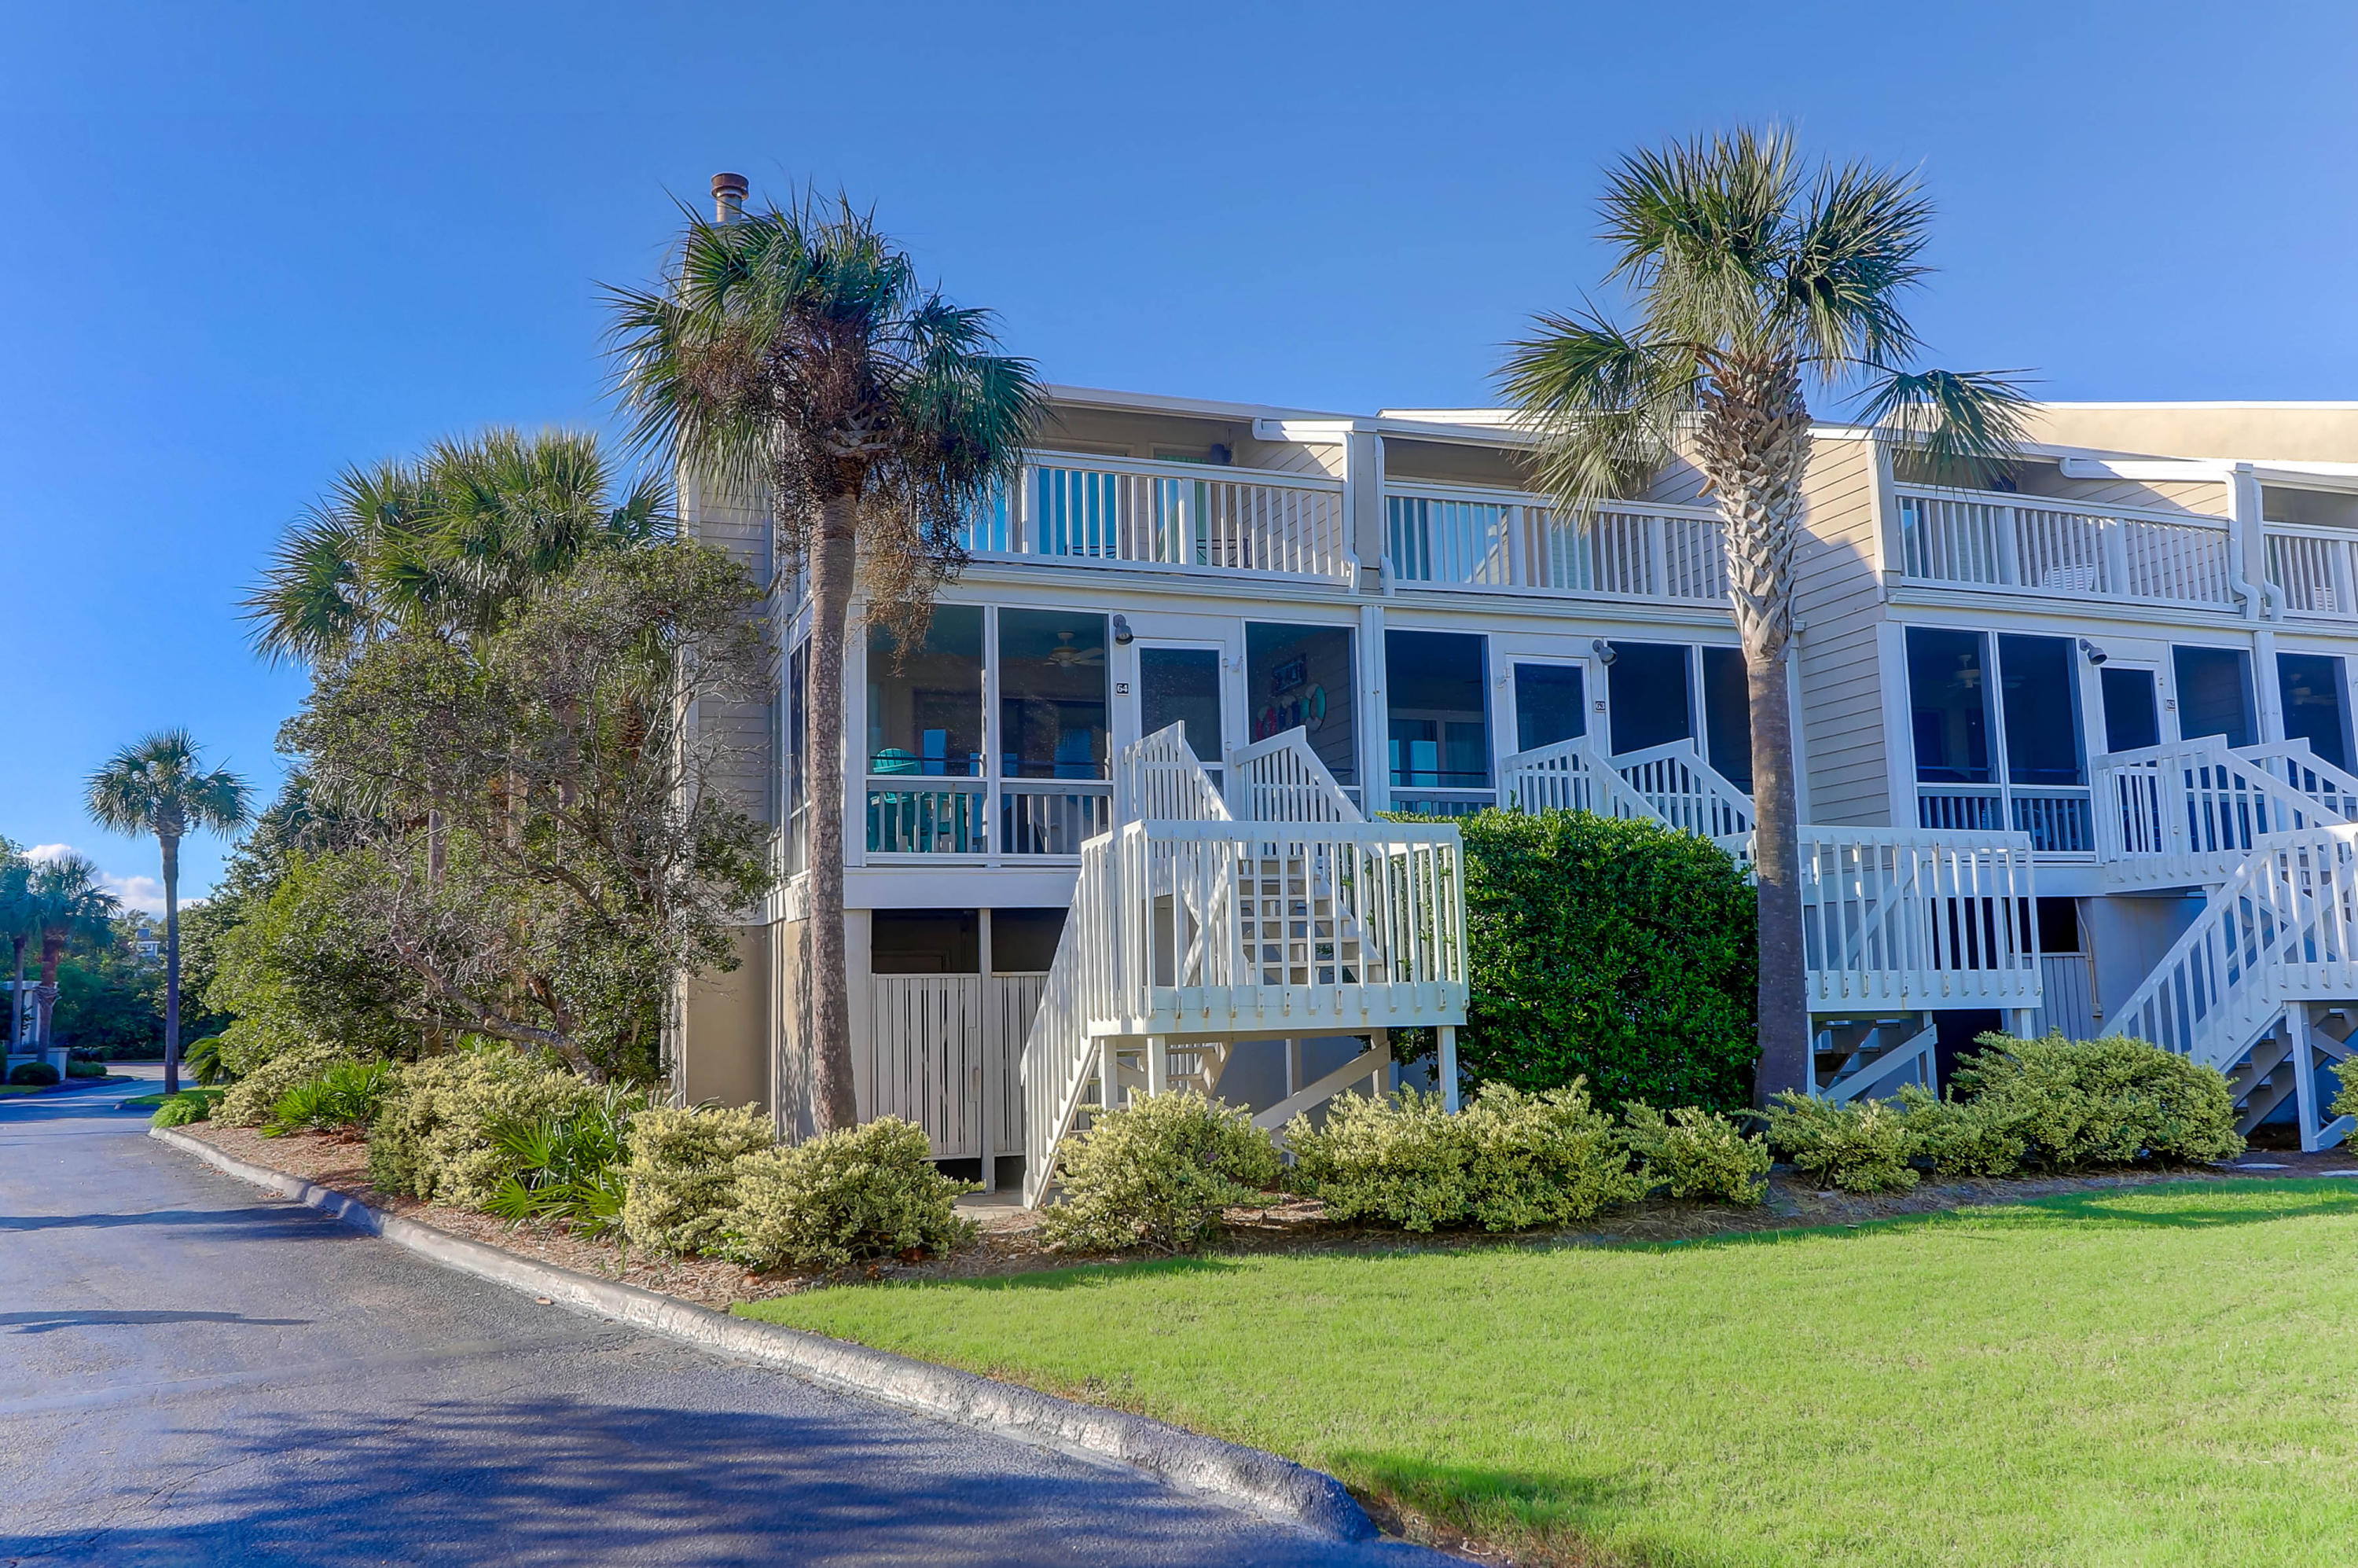 64 #64 Beach Club Isle Of Palms, SC 29451